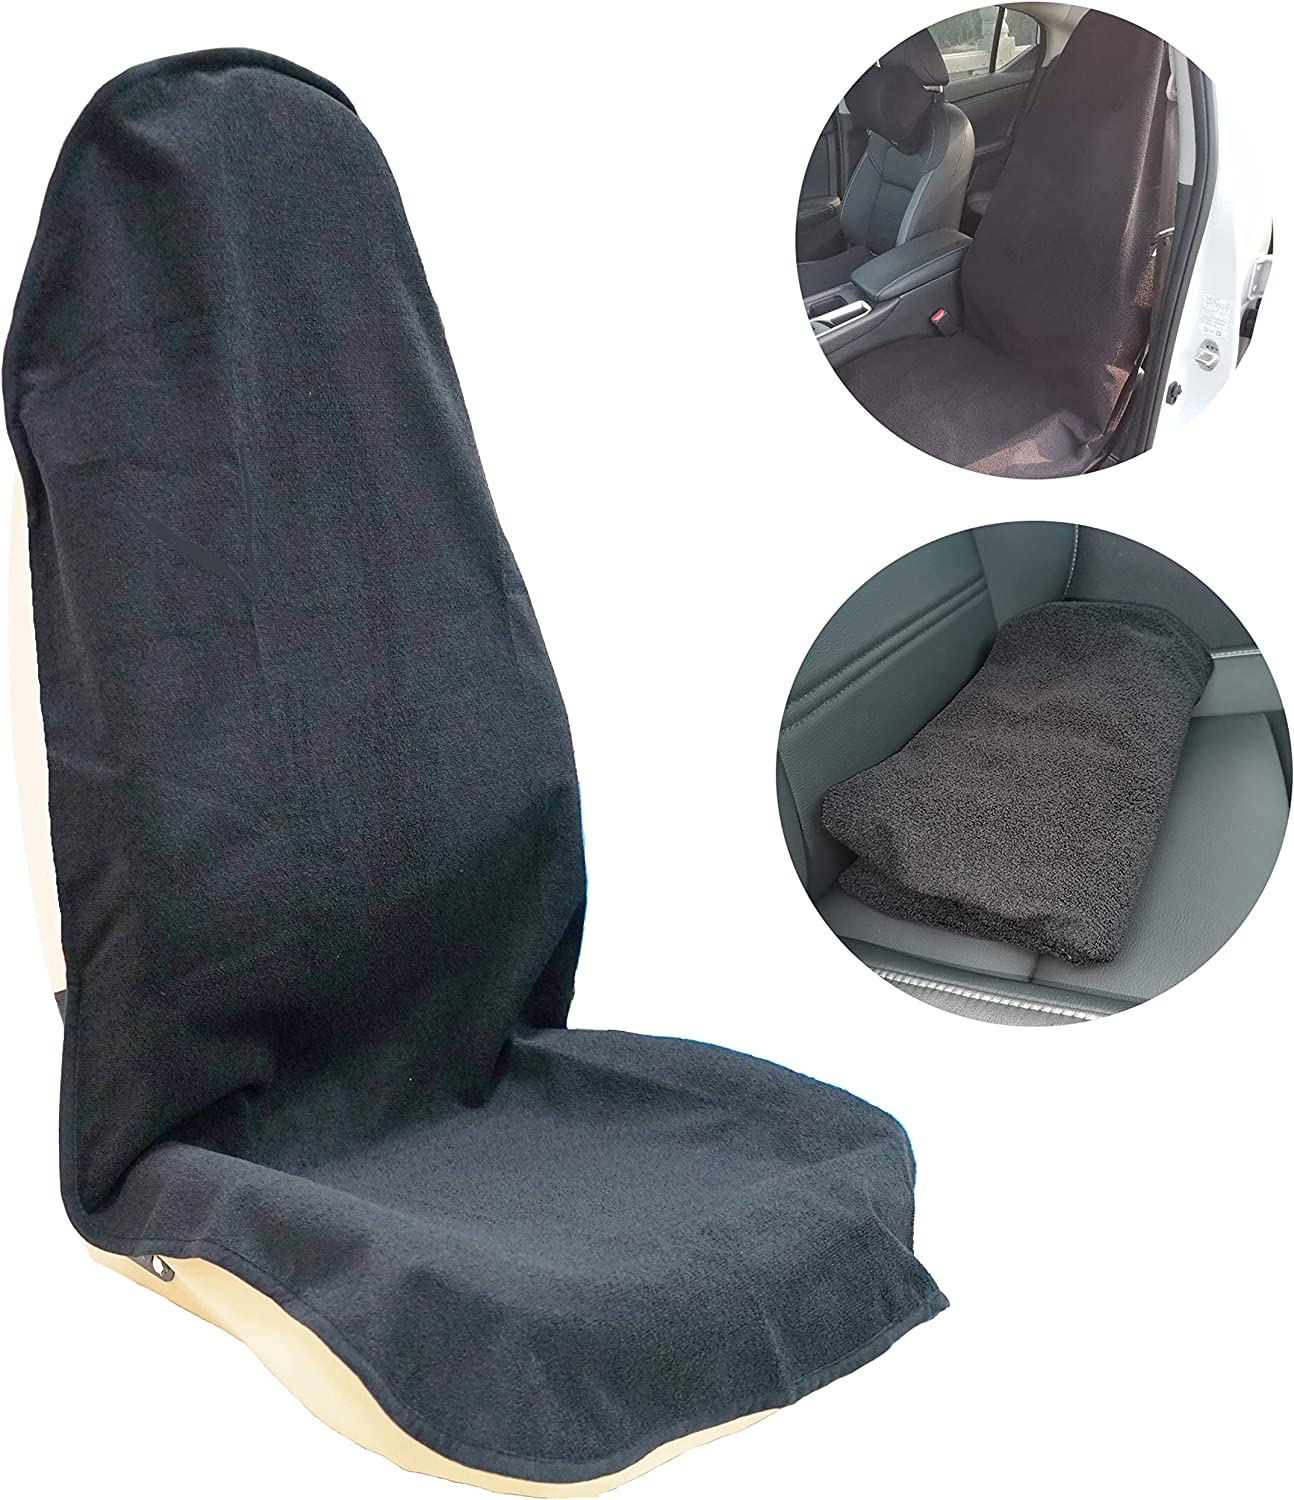 Car Seat Max 63% OFF Covers Waterproof Front Max 49% OFF Seats Only for Gym Workout Runn